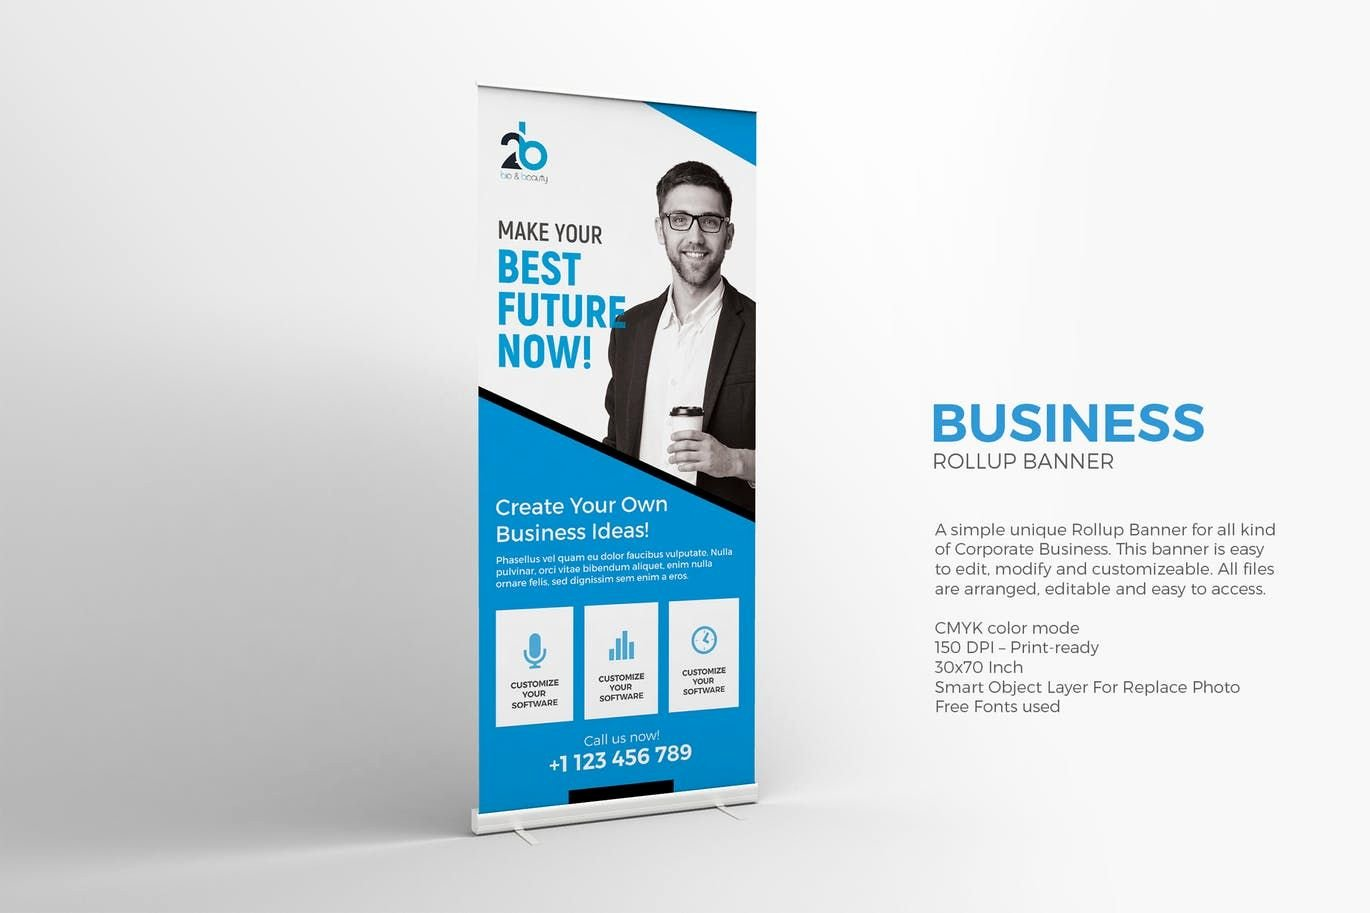 Roll Up Banner Template Elegant Business Roll Up Banner Template Psd Roll Up Banner Design Templates